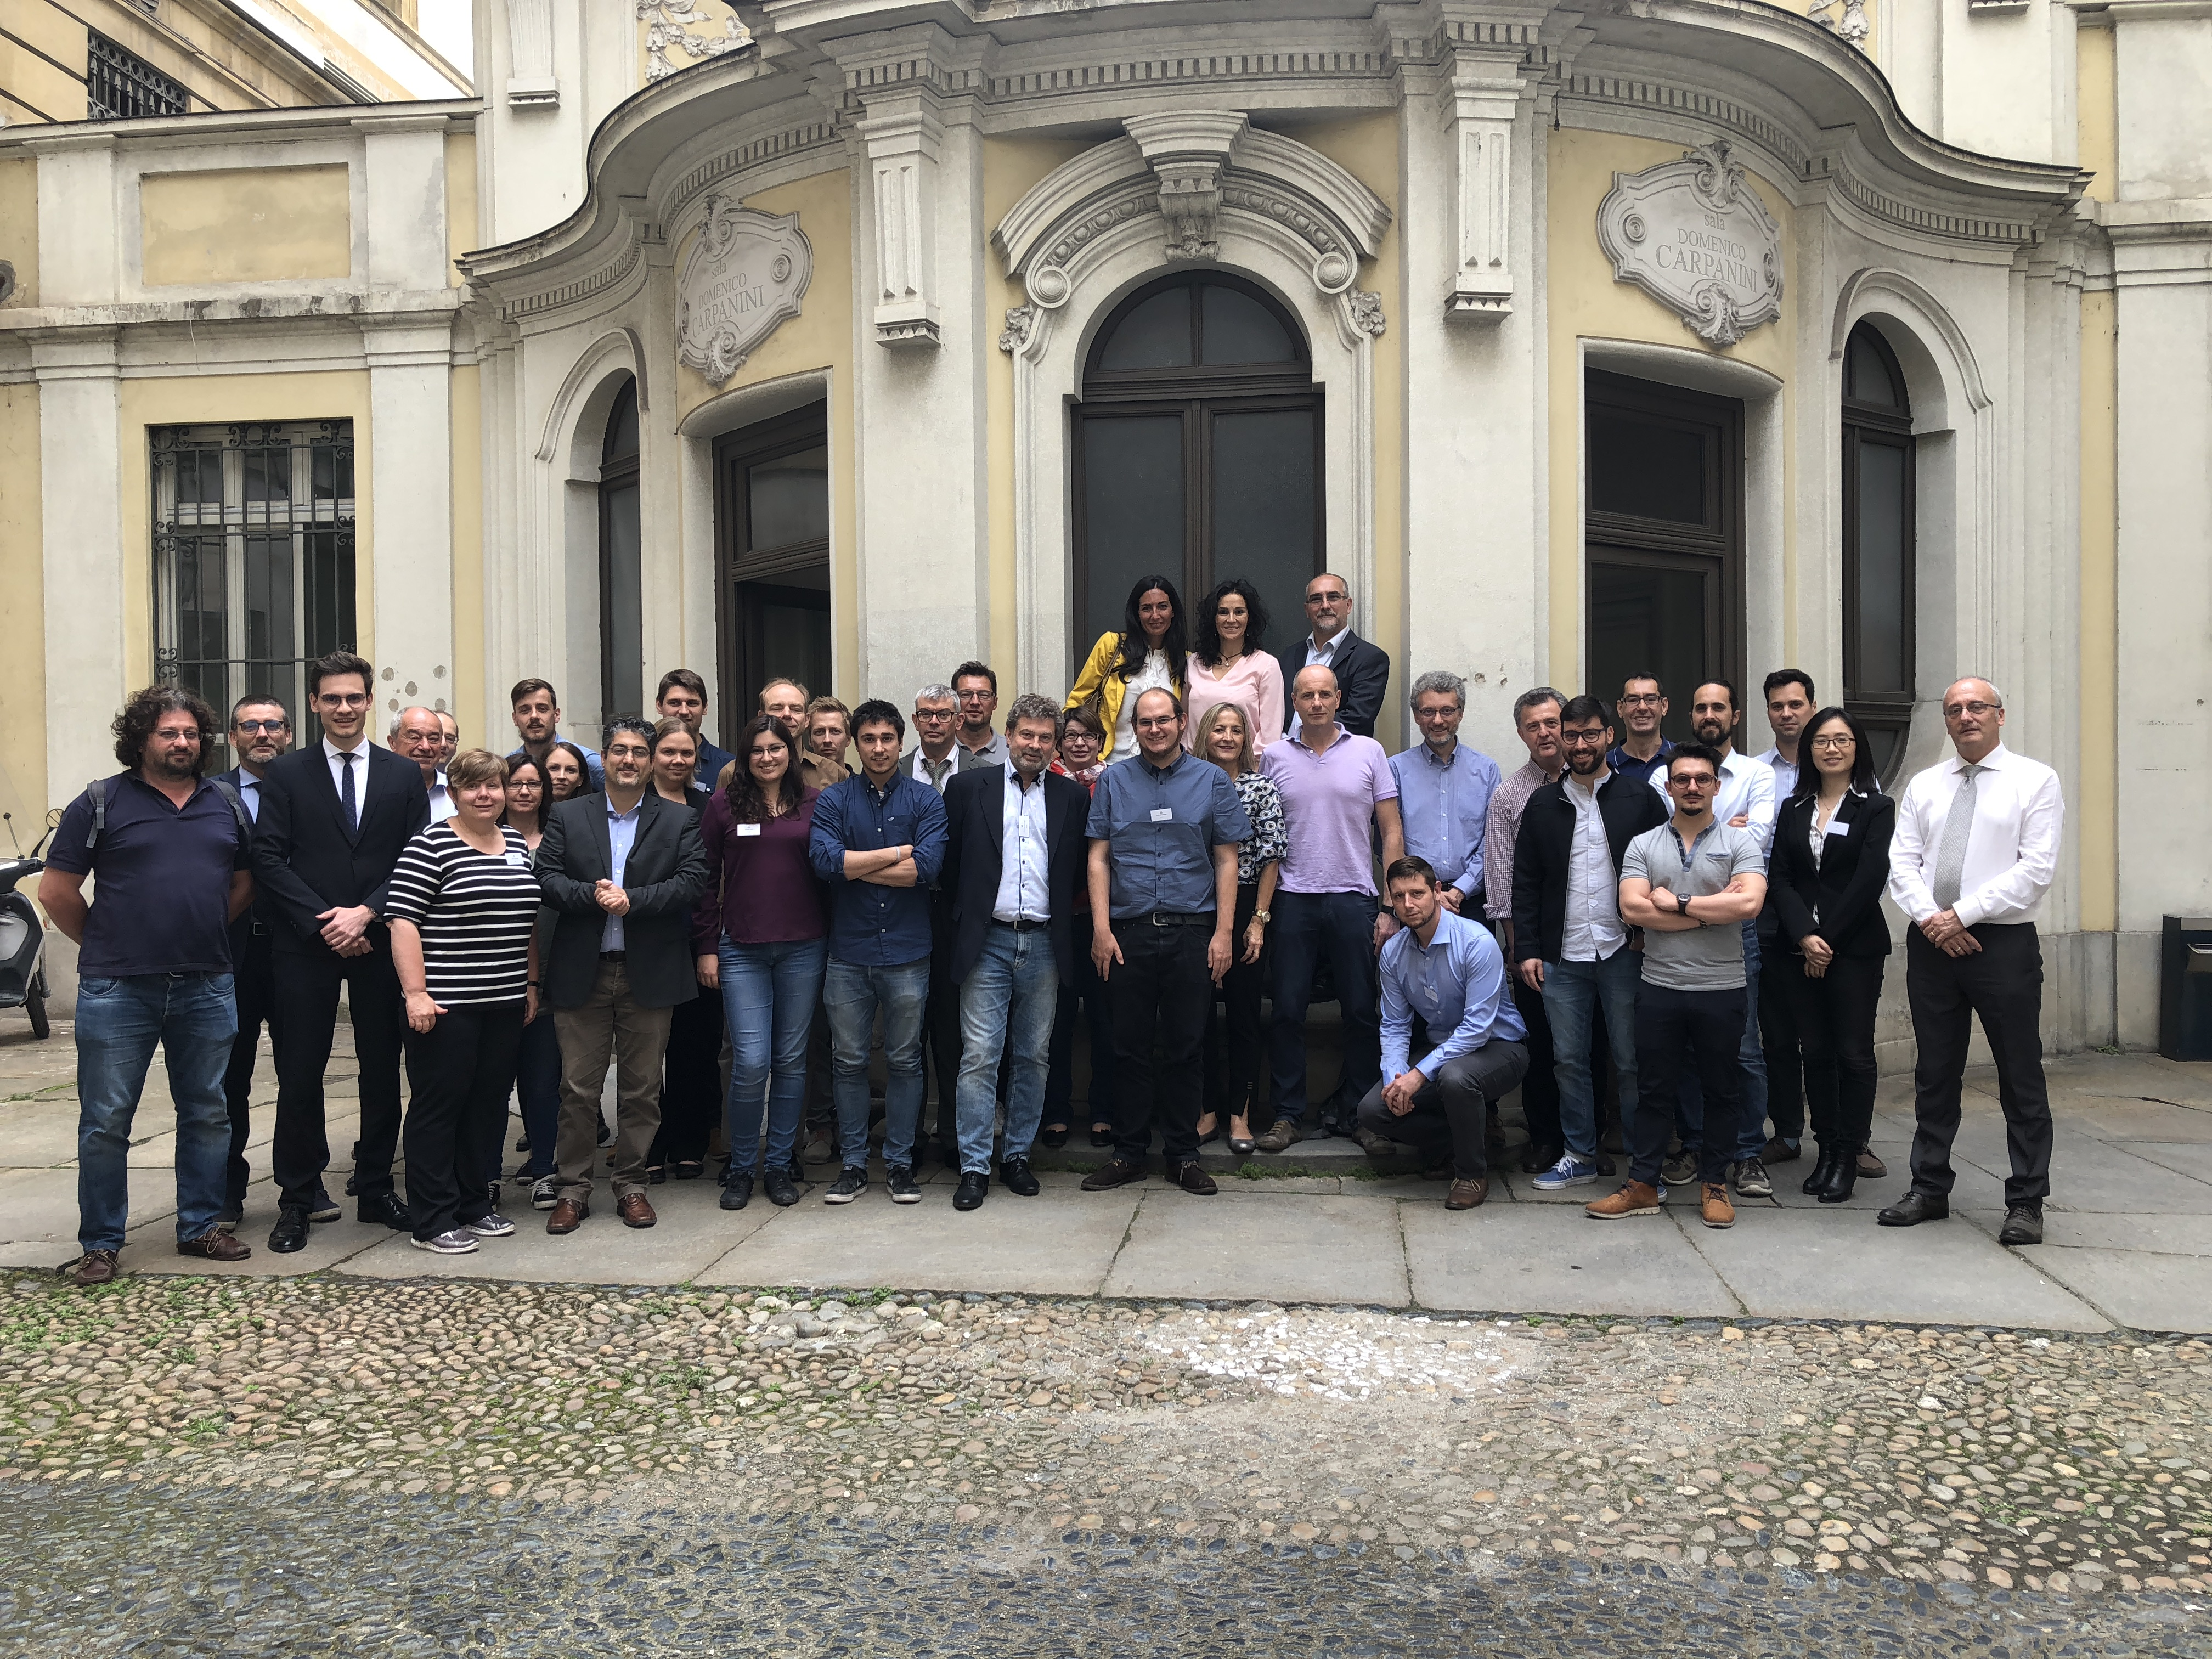 Steve Project Meeting, June 11, 2018. Tourino (Italy)